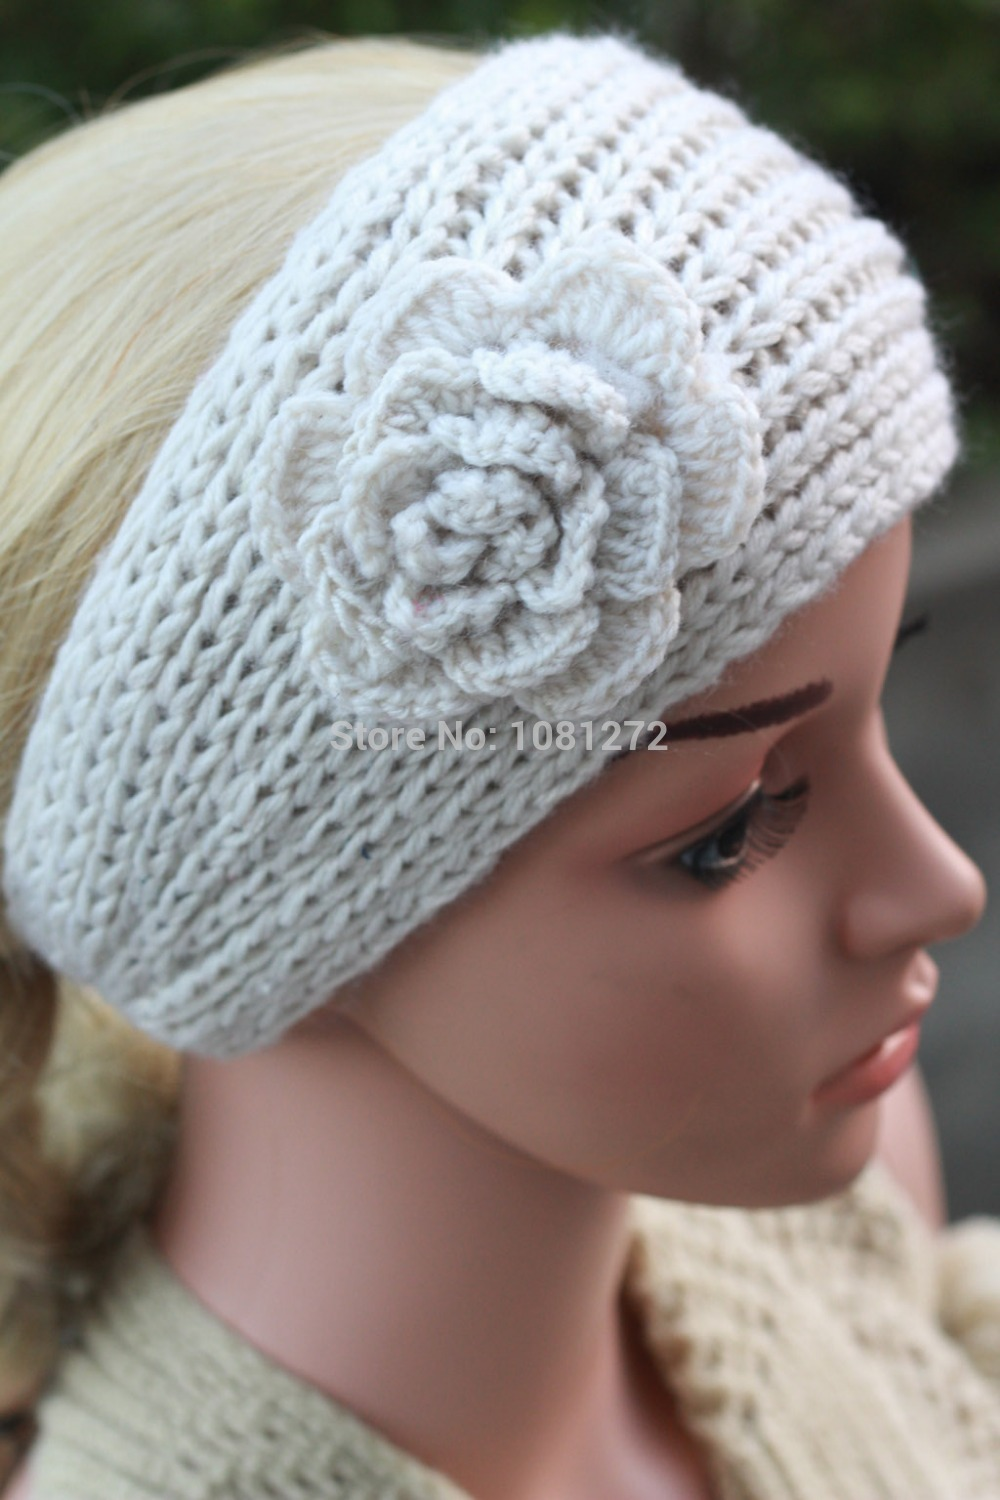 Knitting Pattern For A Headband With Flower : Online Get Cheap Knit Flower Headband Pattern -Aliexpress.com Alibaba Group